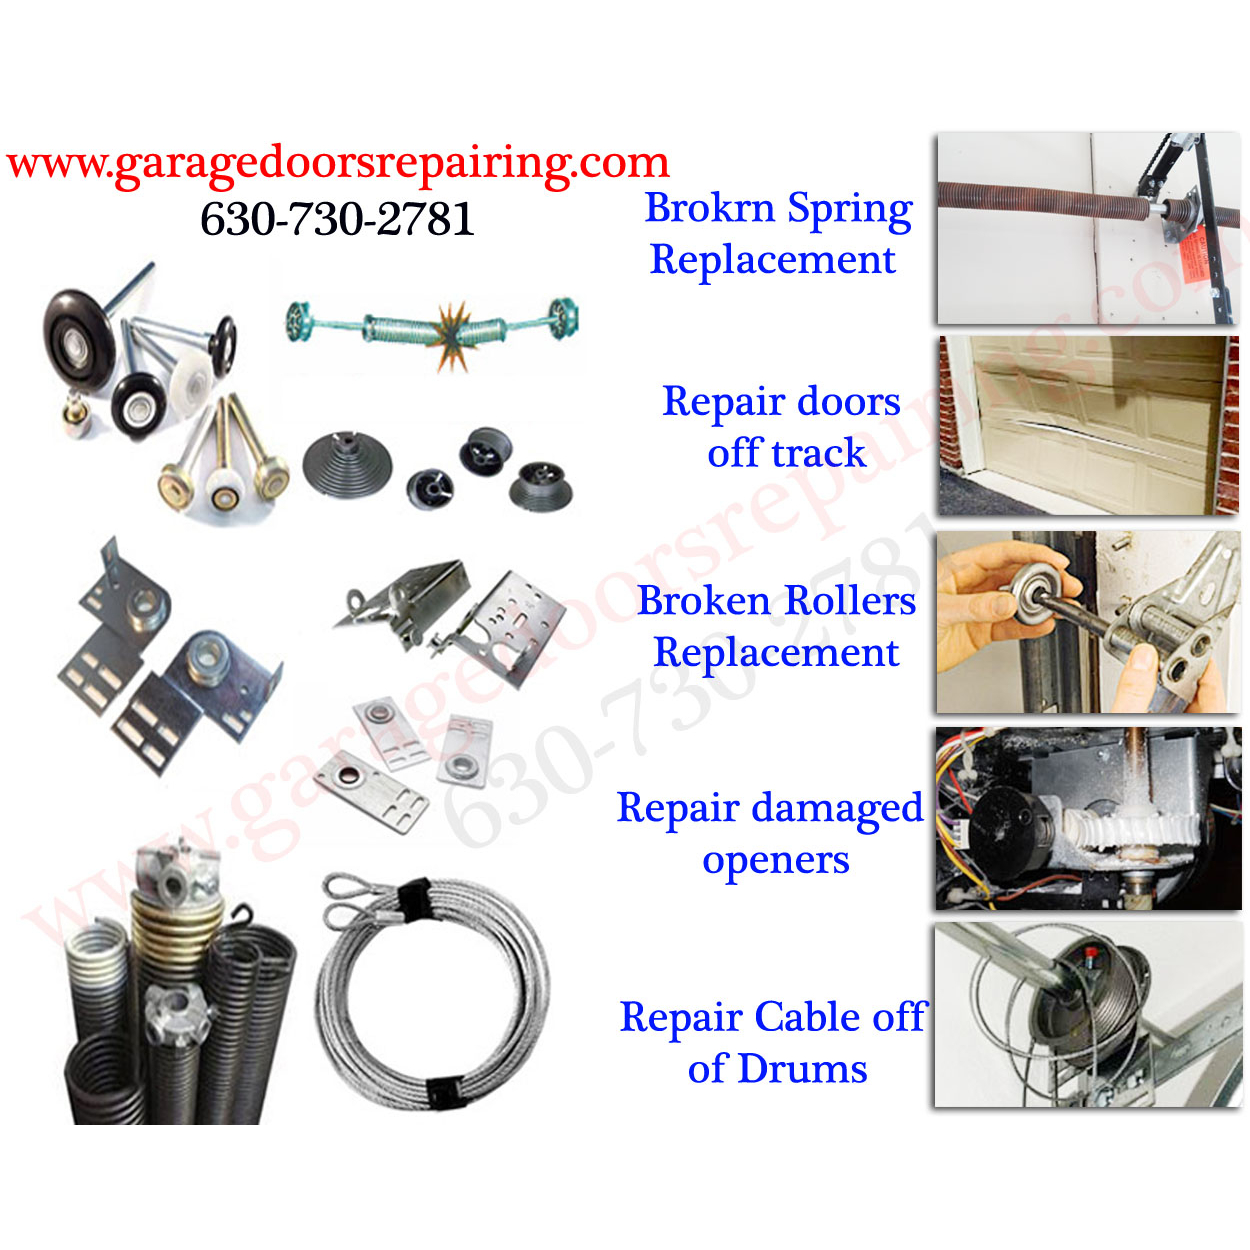 Garage Doors Repairing Inc.